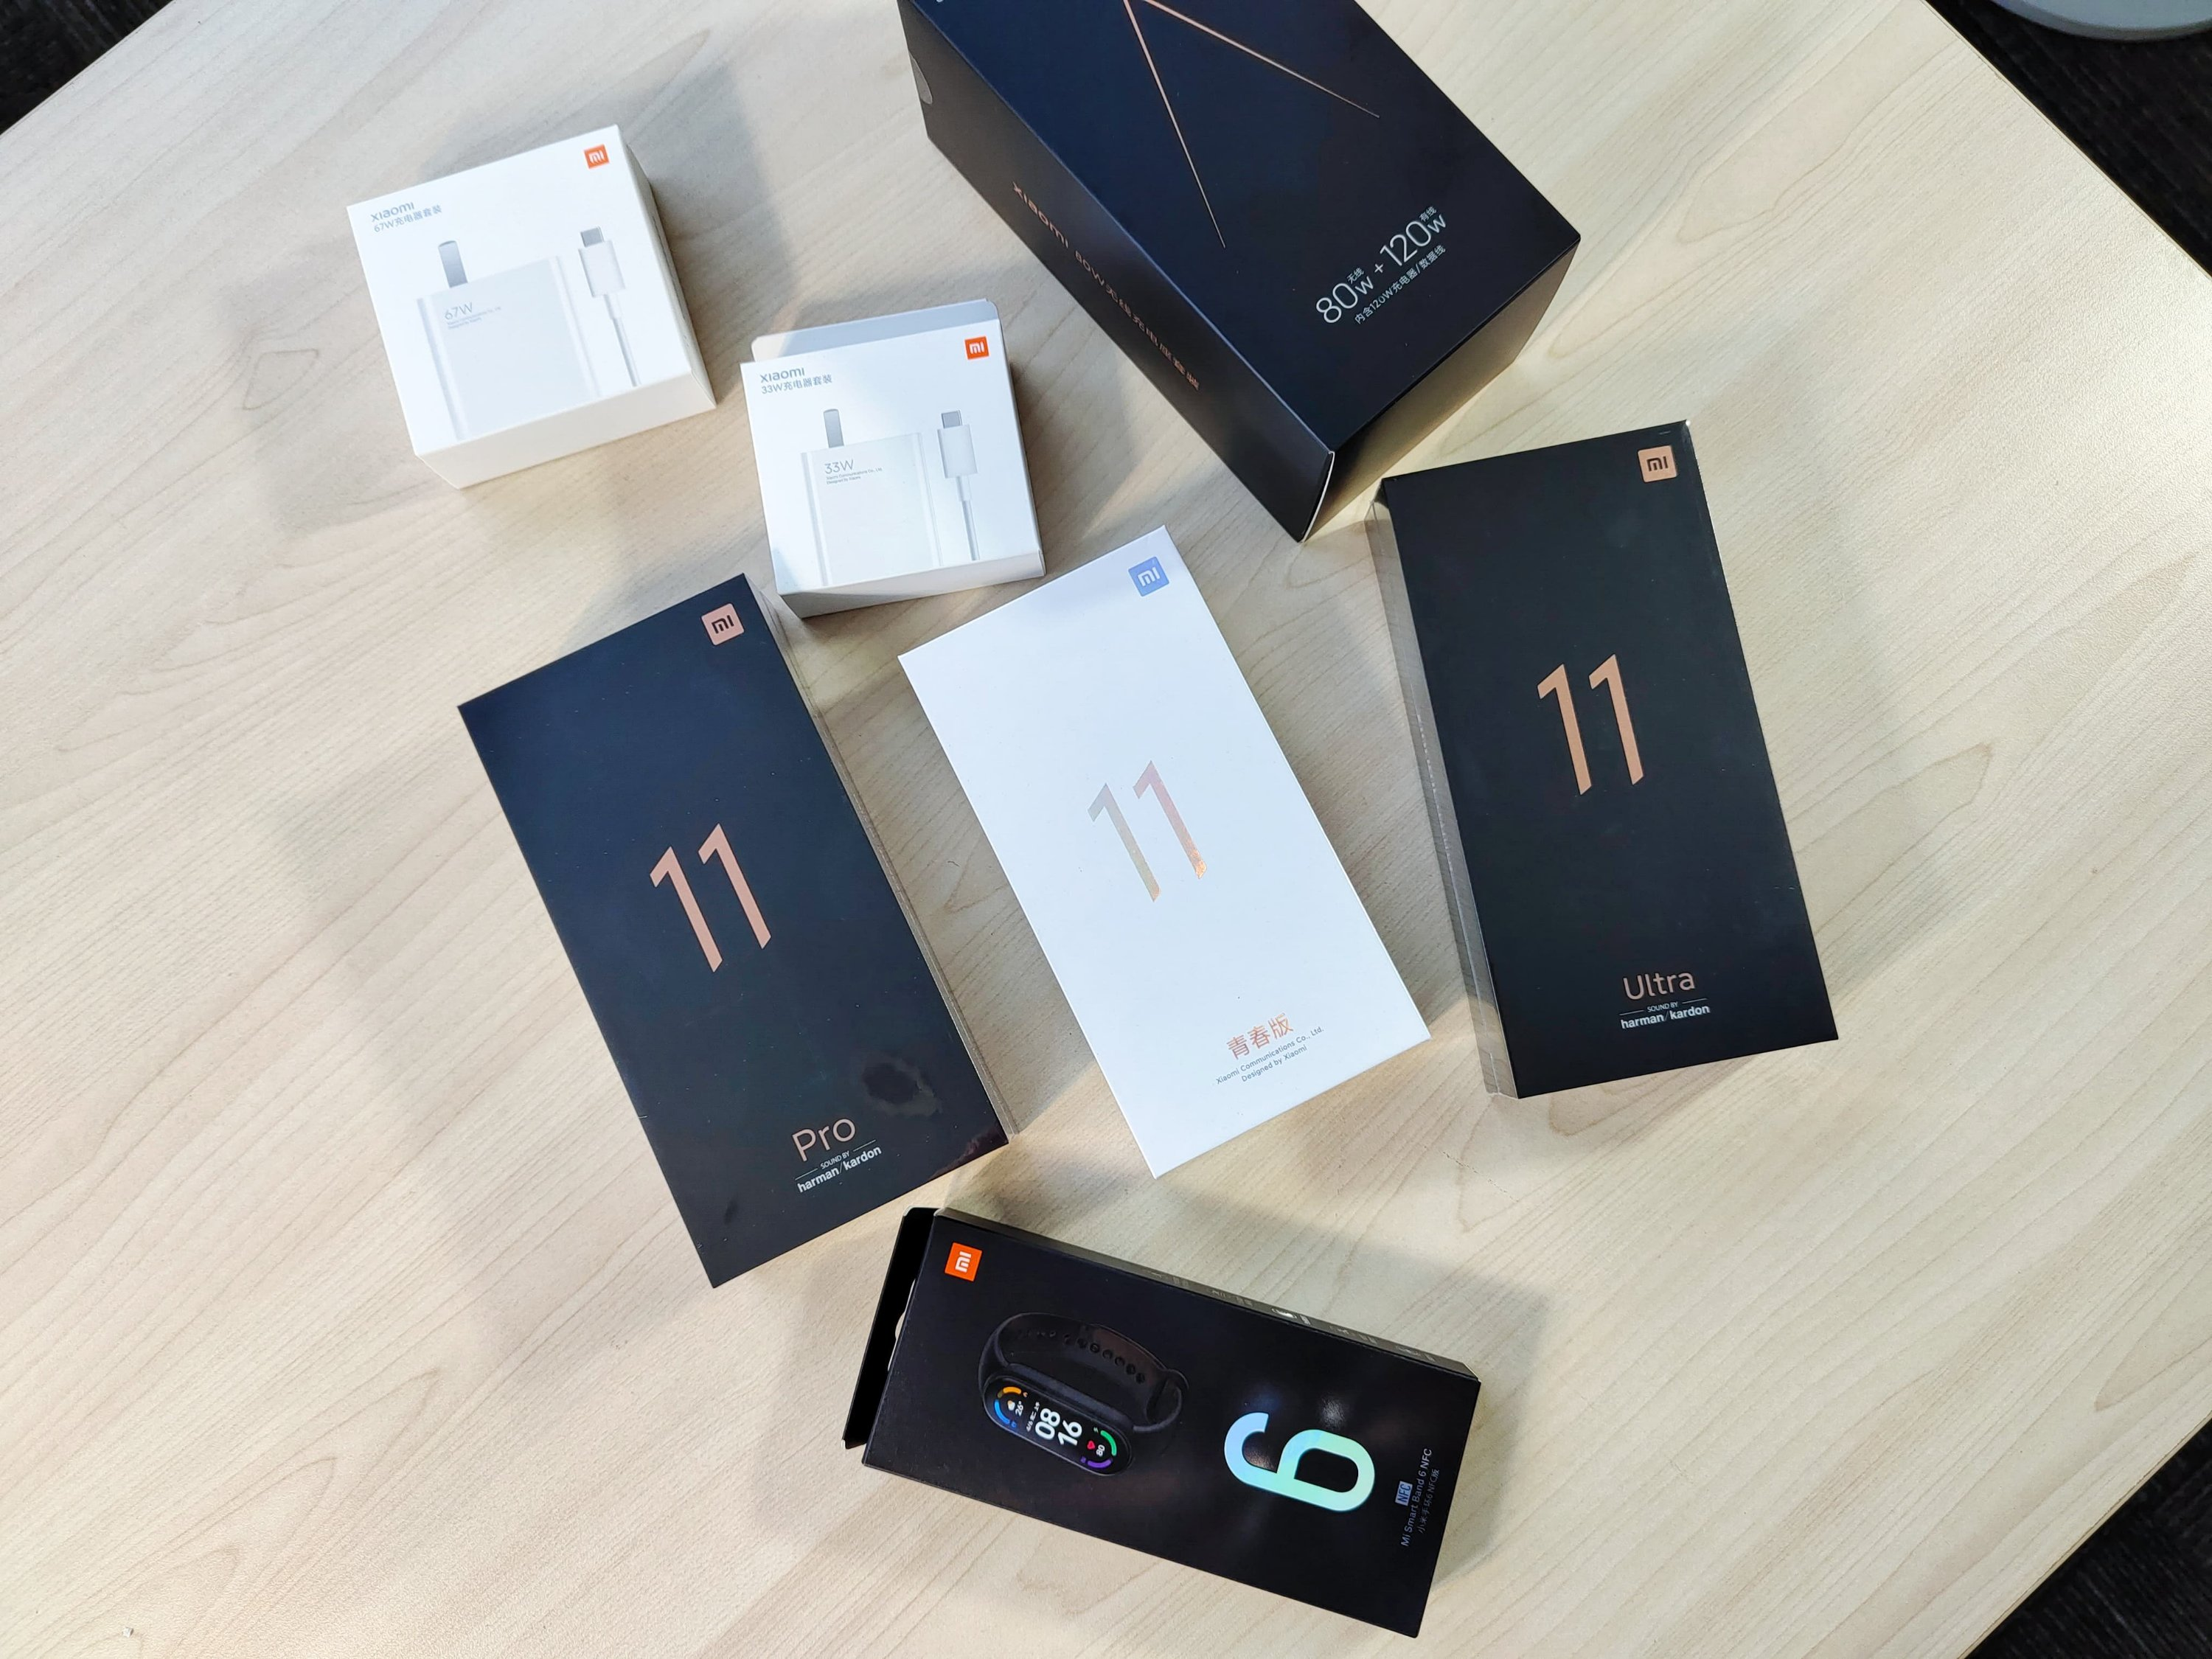 Xiaomi 11 Pro and 11 Ultra Review